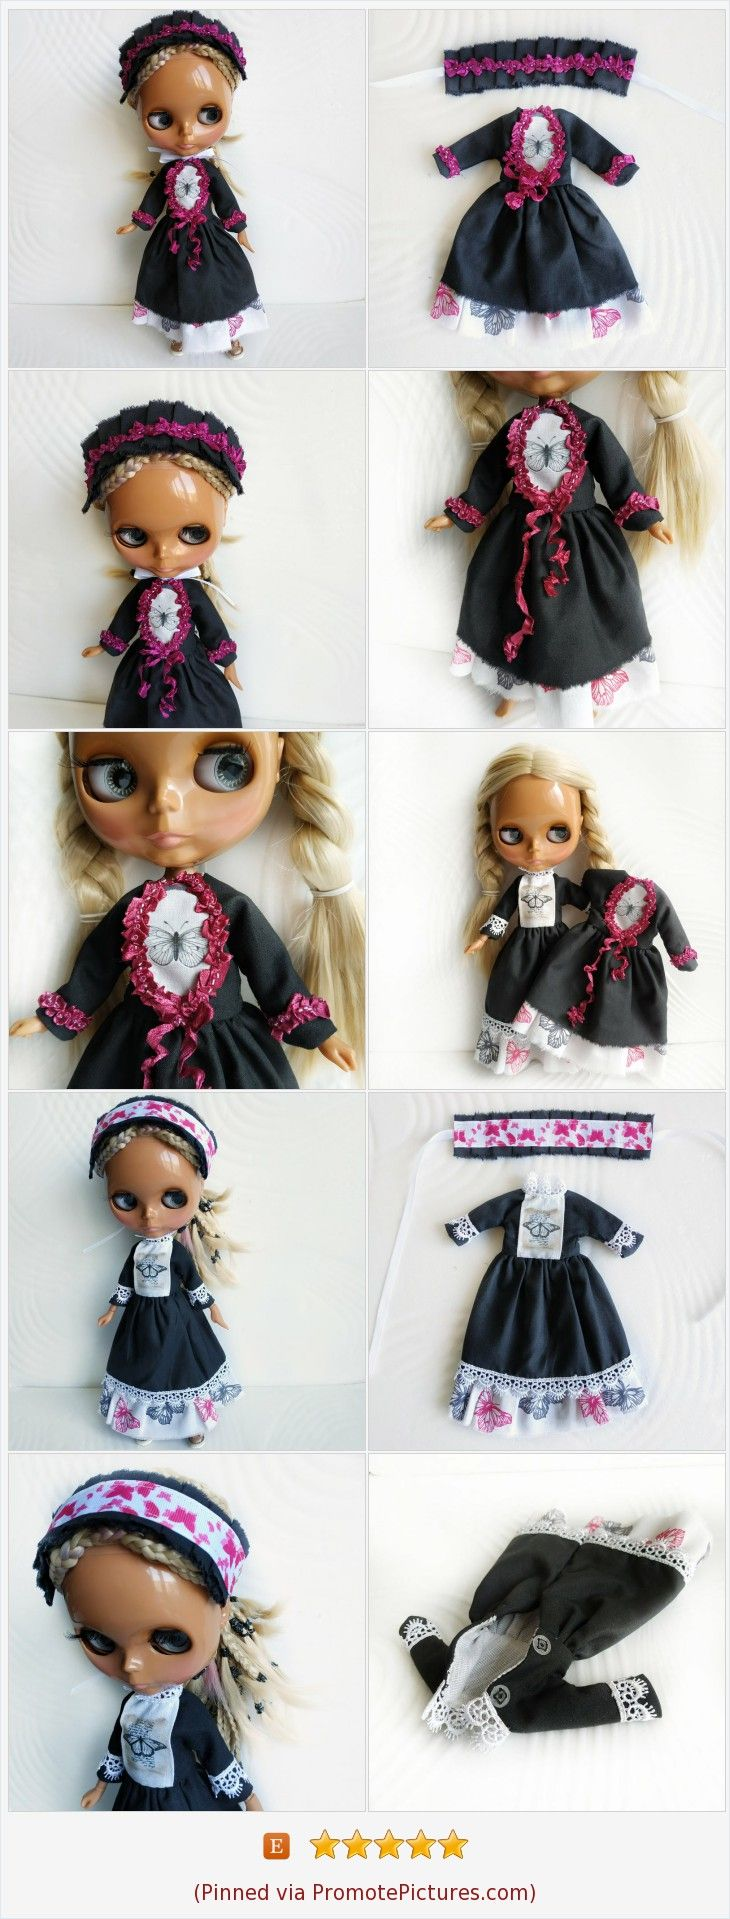 Blythe black long victorian dress and lace headband/ Azone doll gothic outfit set